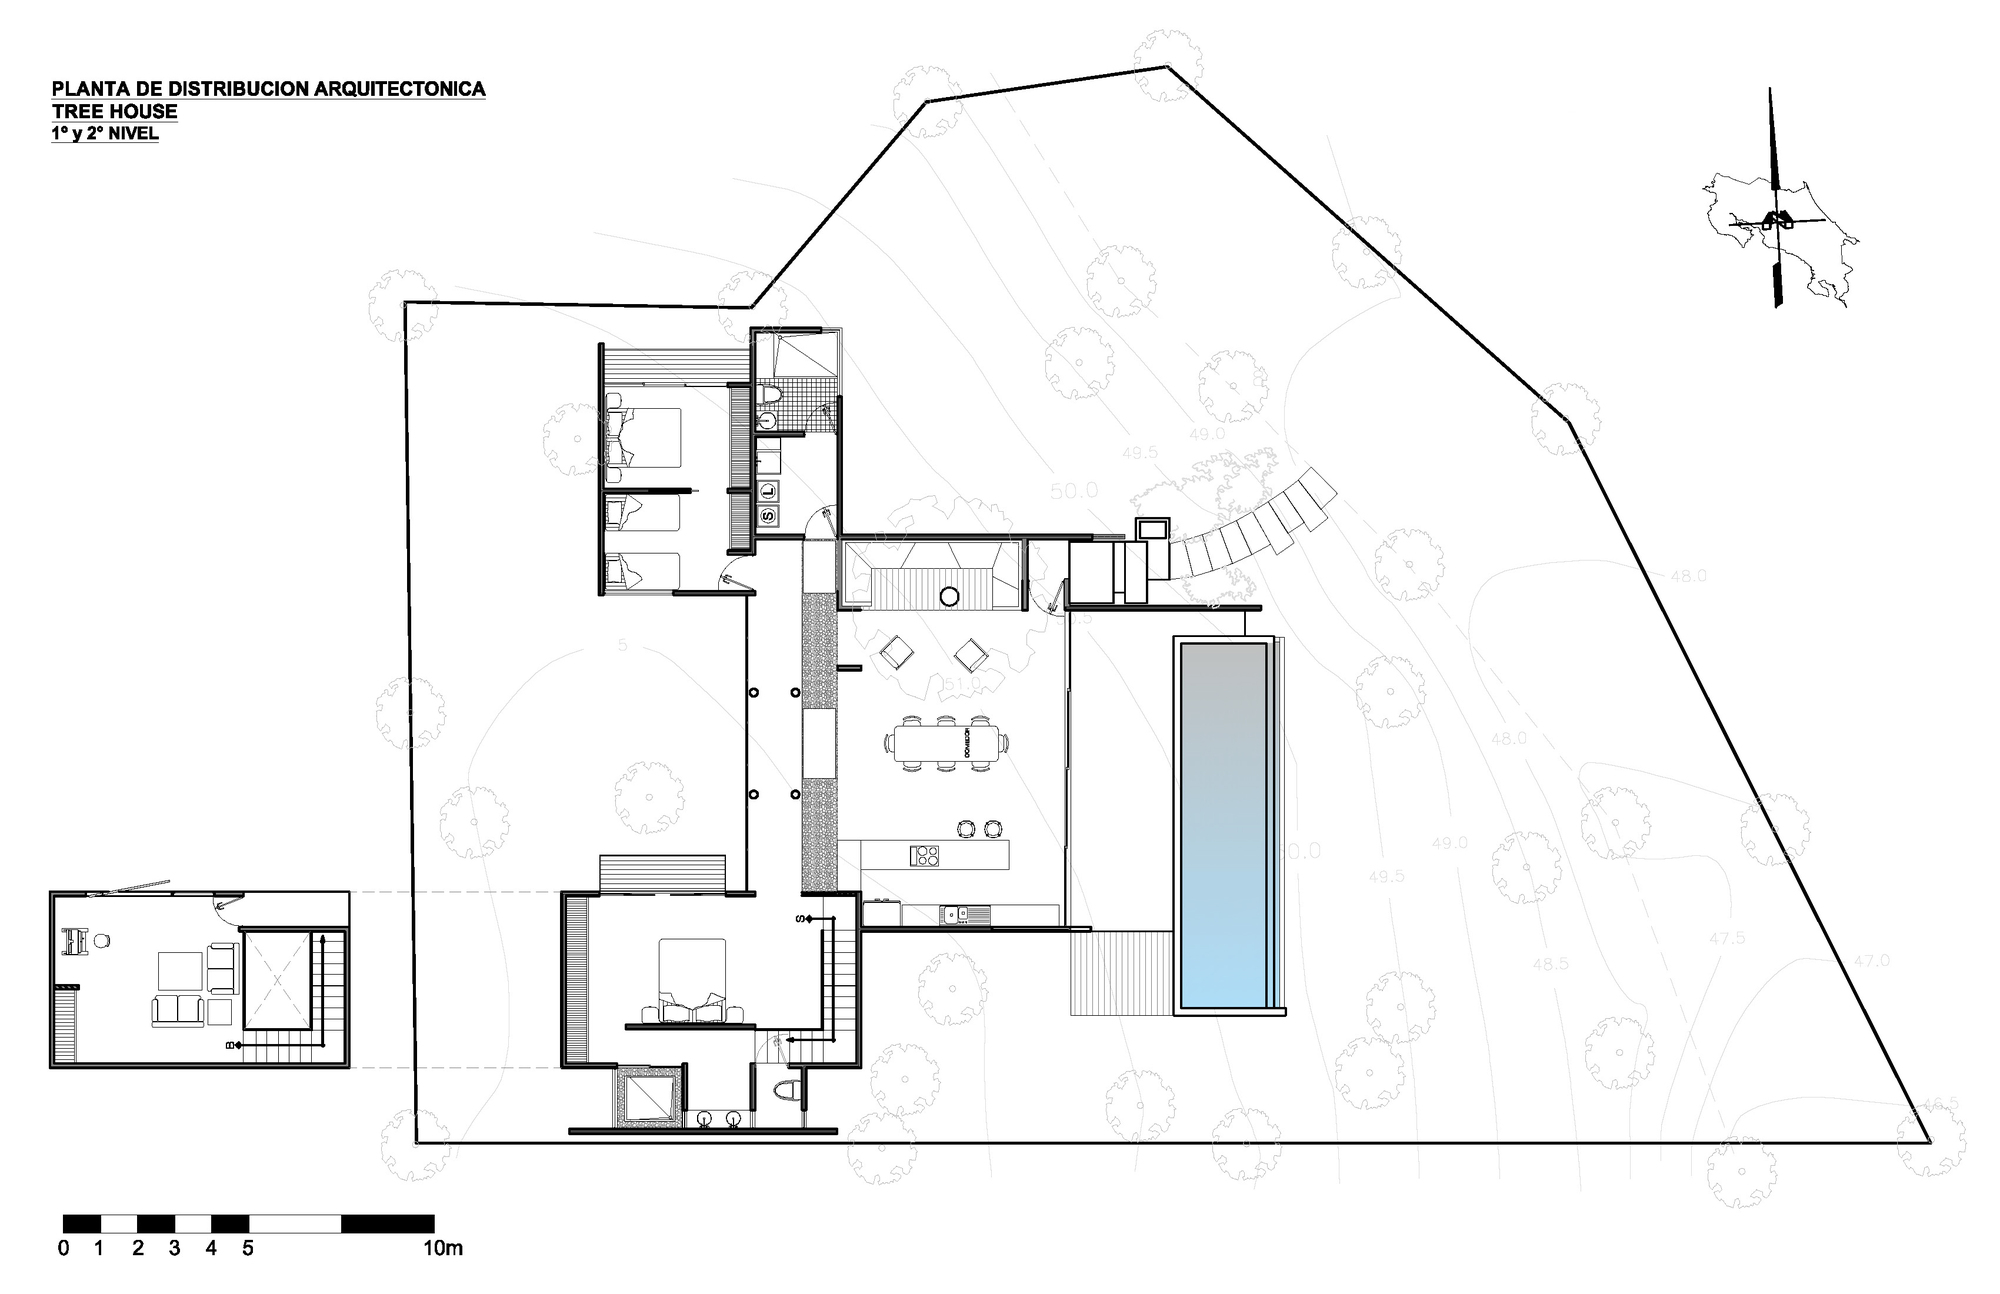 Gallery of tree house qbo3 arquitectos 21 for Tree house floor plans